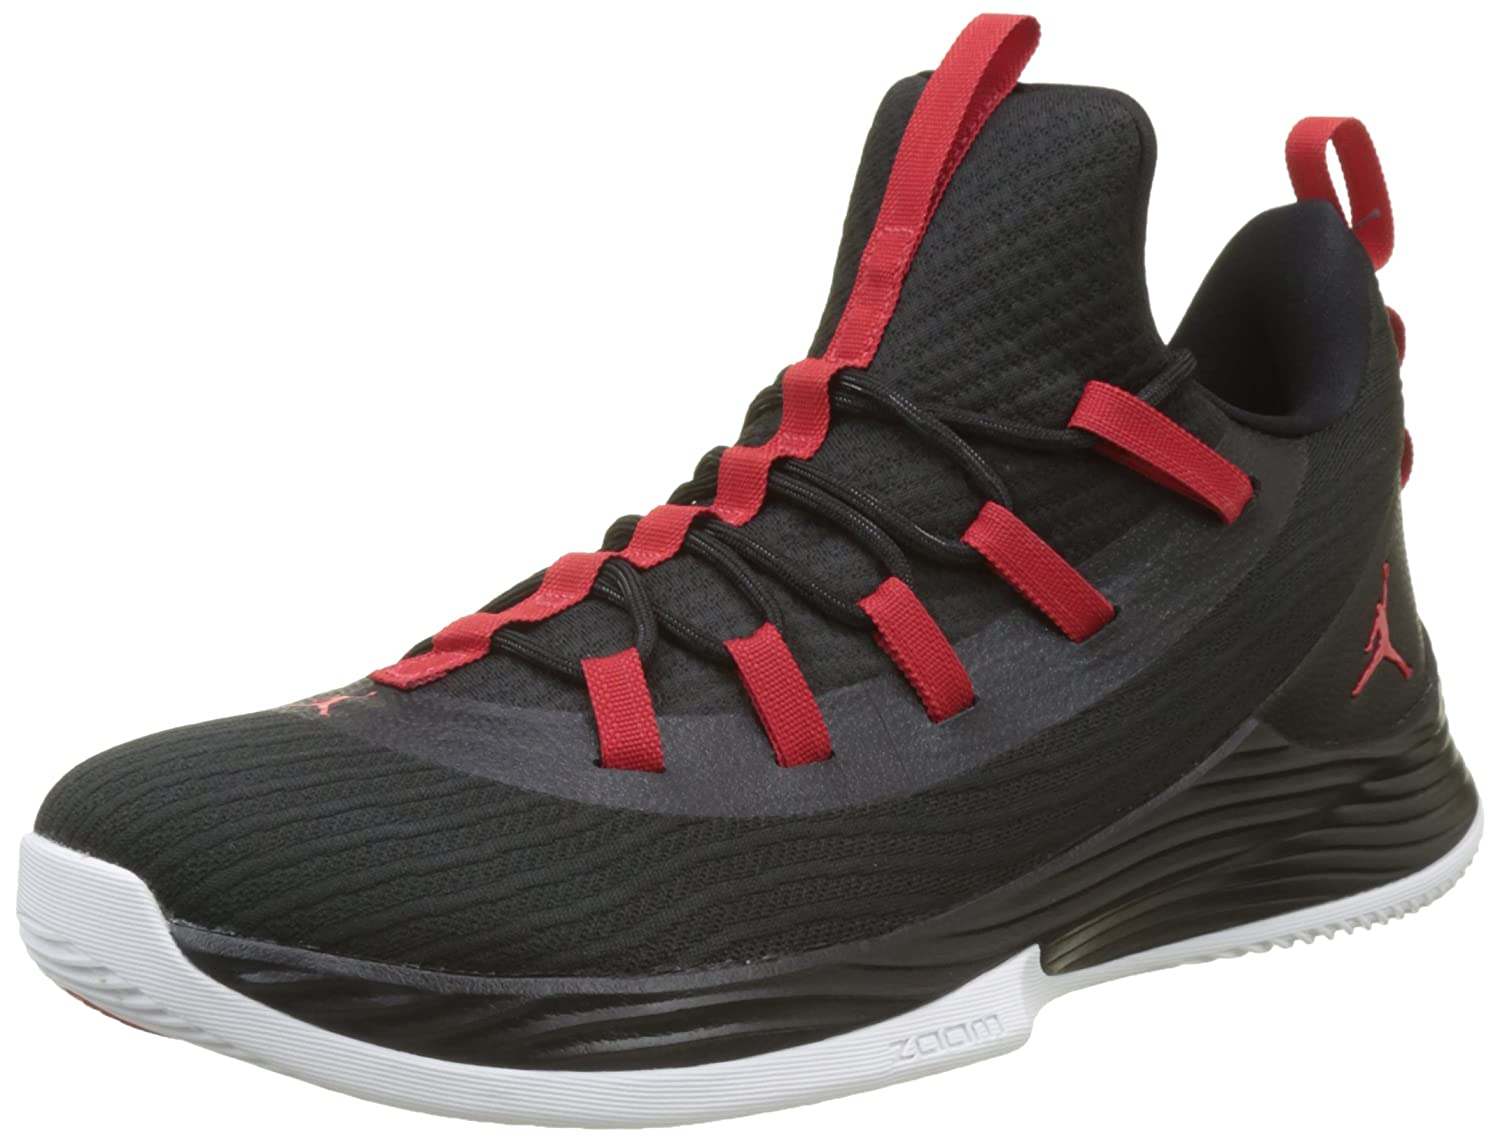 brand new e3ce6 33aba Amazon.com   Nike Jordan Ultra Fly 2 Low Mens Fashion-Sneakers AH8110-001 9  - Black University RED-White   Basketball